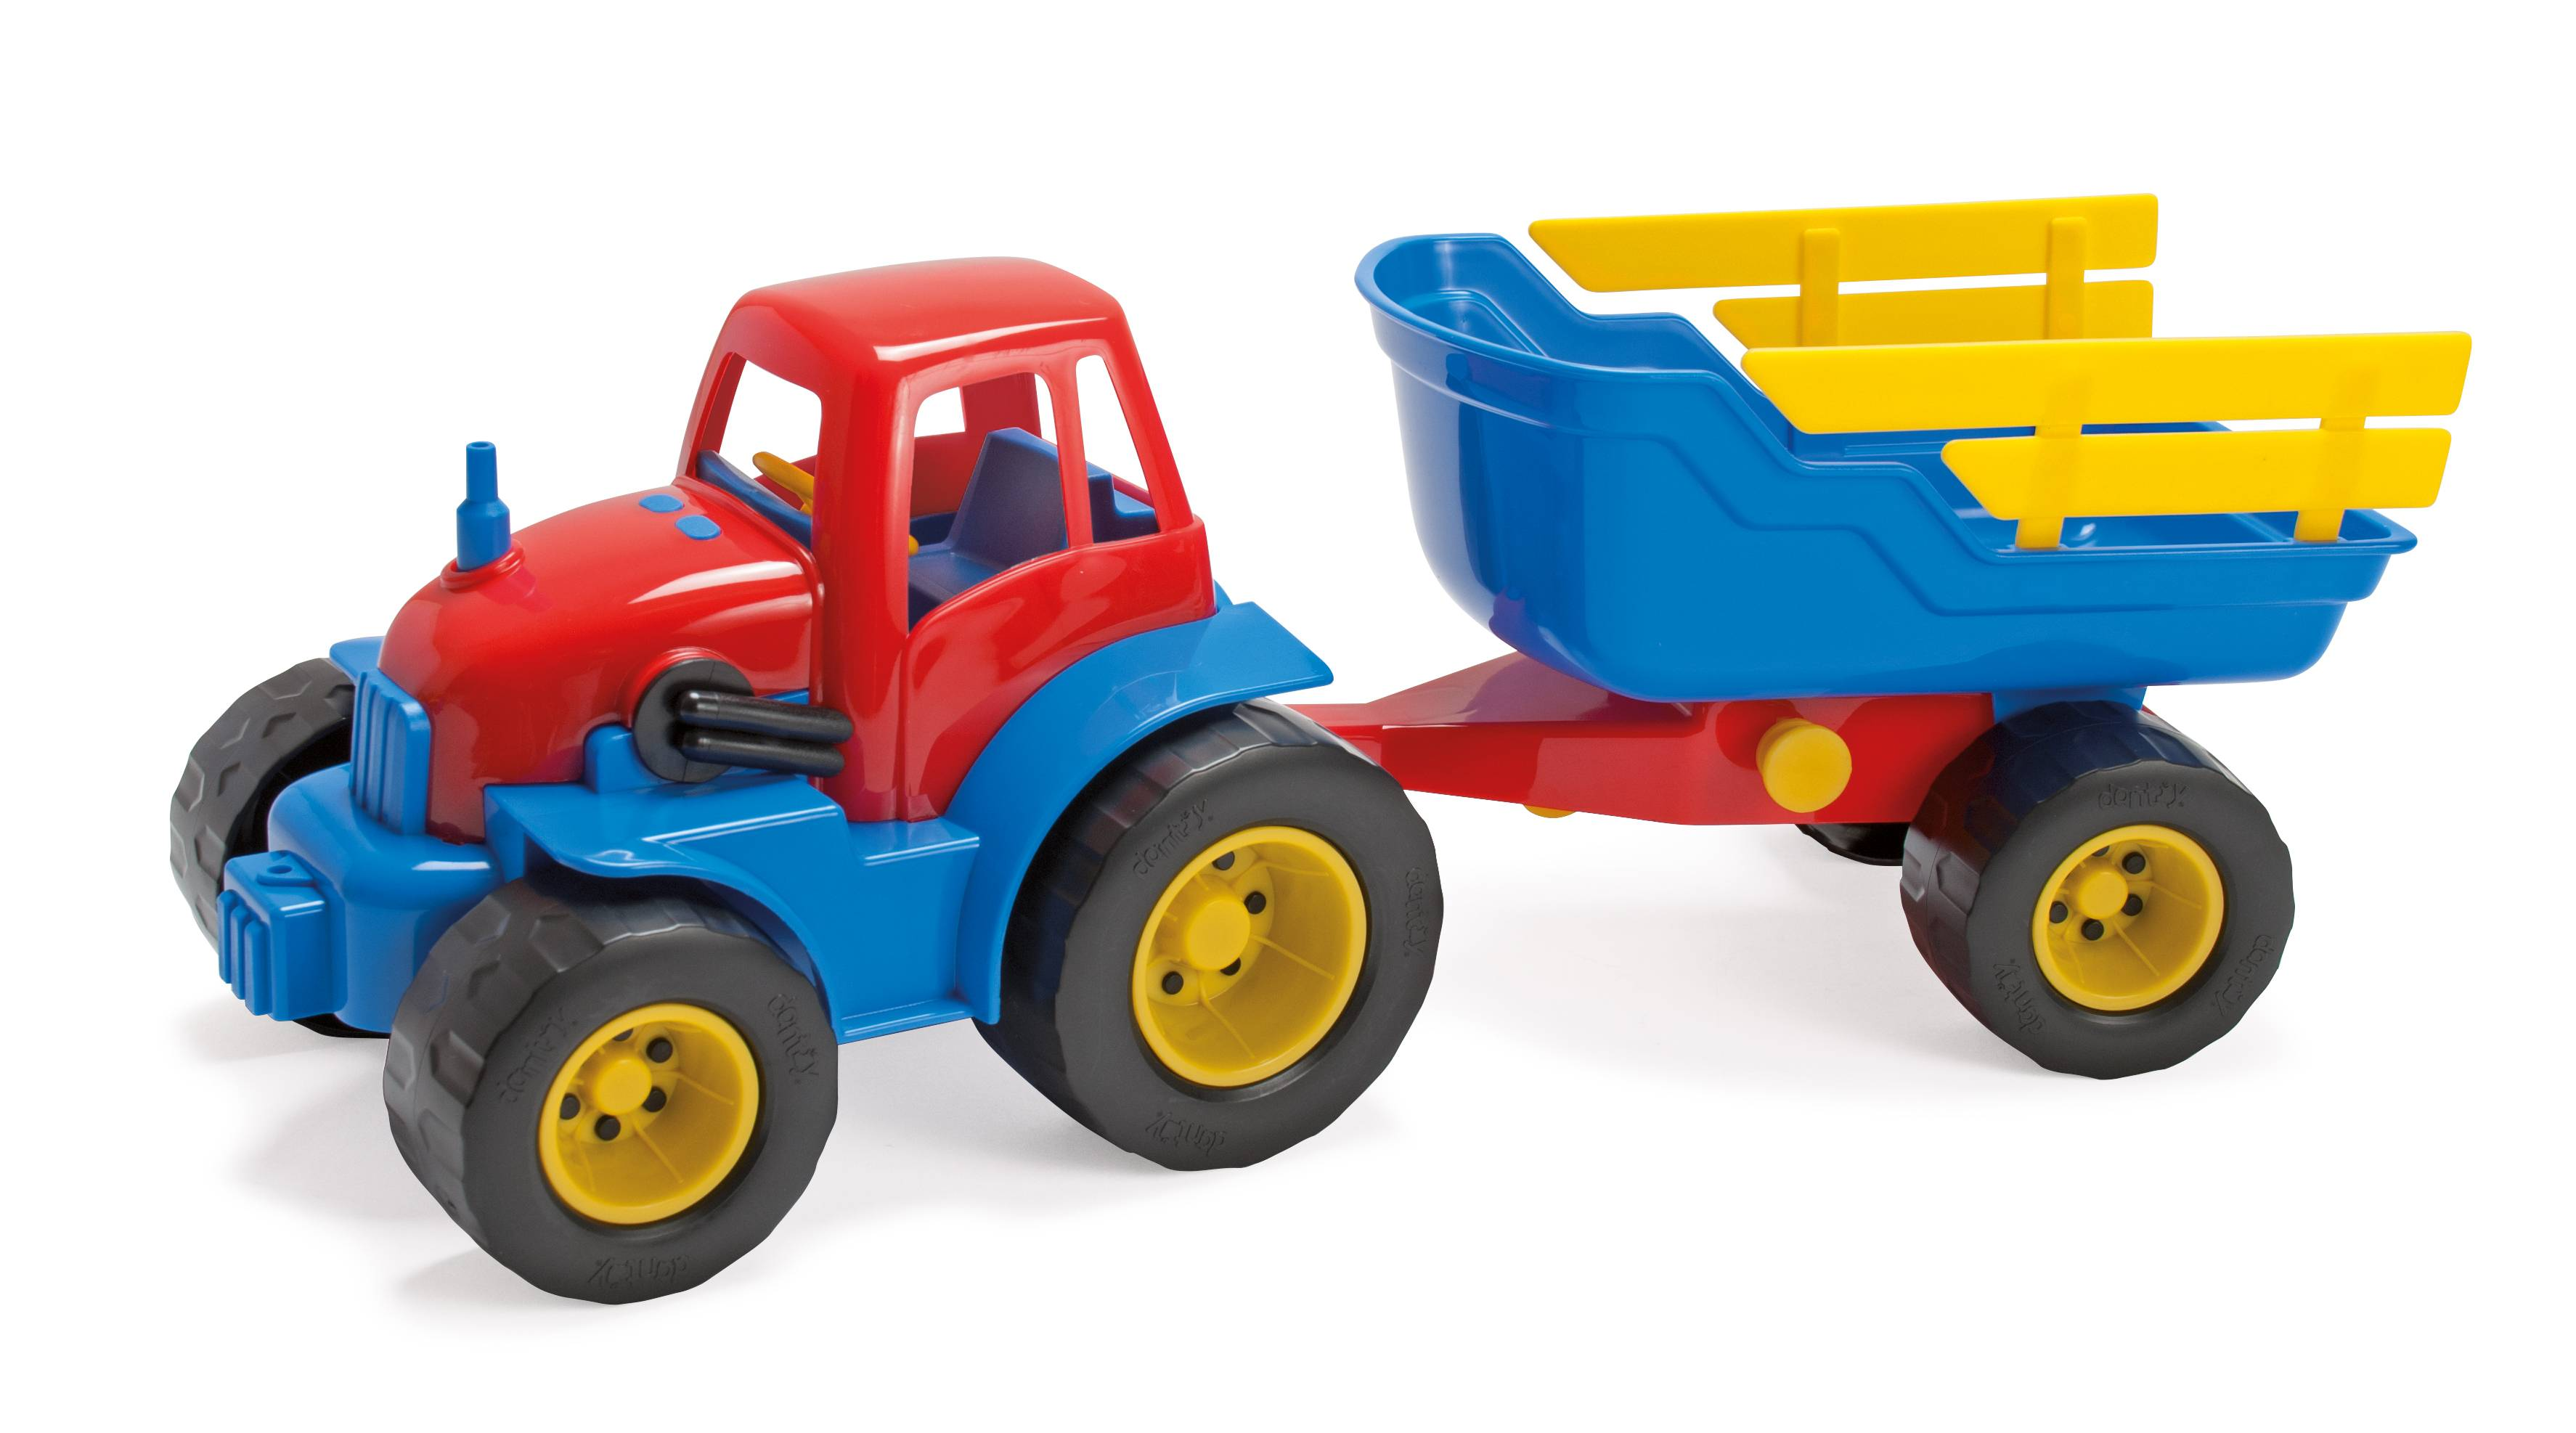 Dantoy - Tractor with trailer (2135)